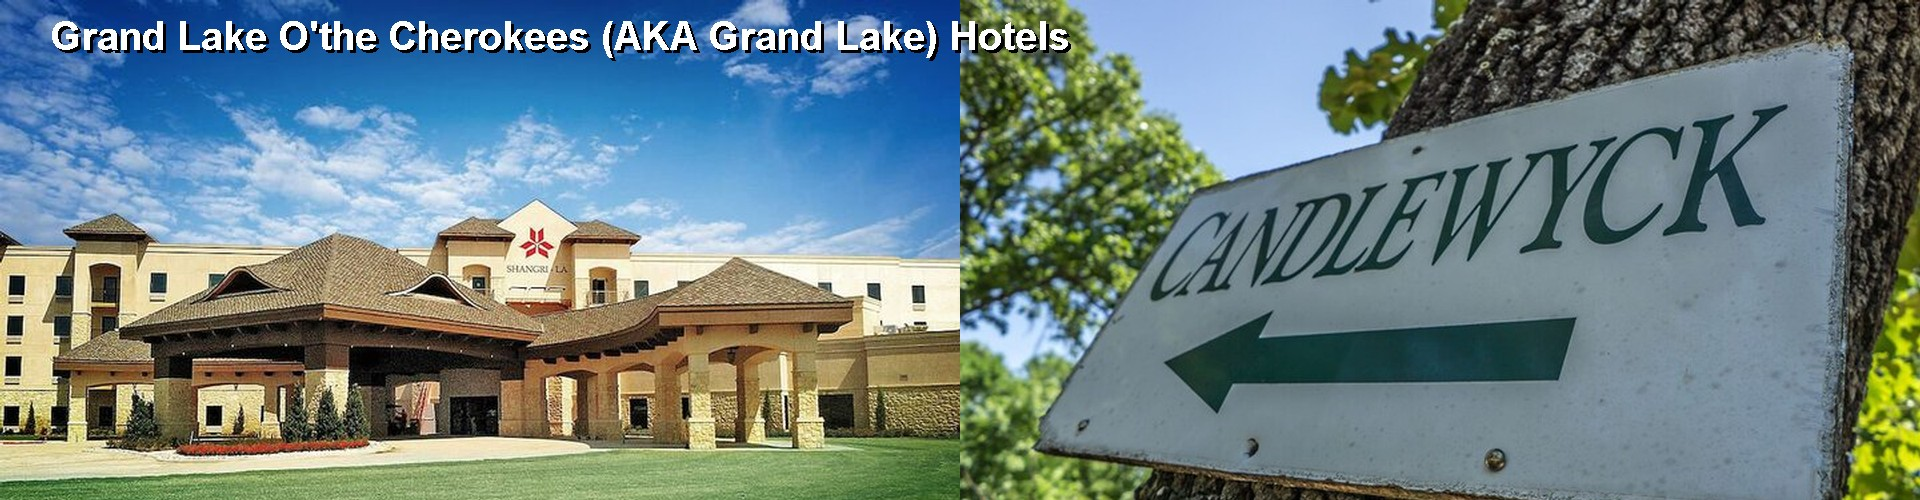 5 Best Hotels near Grand Lake O'the Cherokees (AKA Grand Lake)